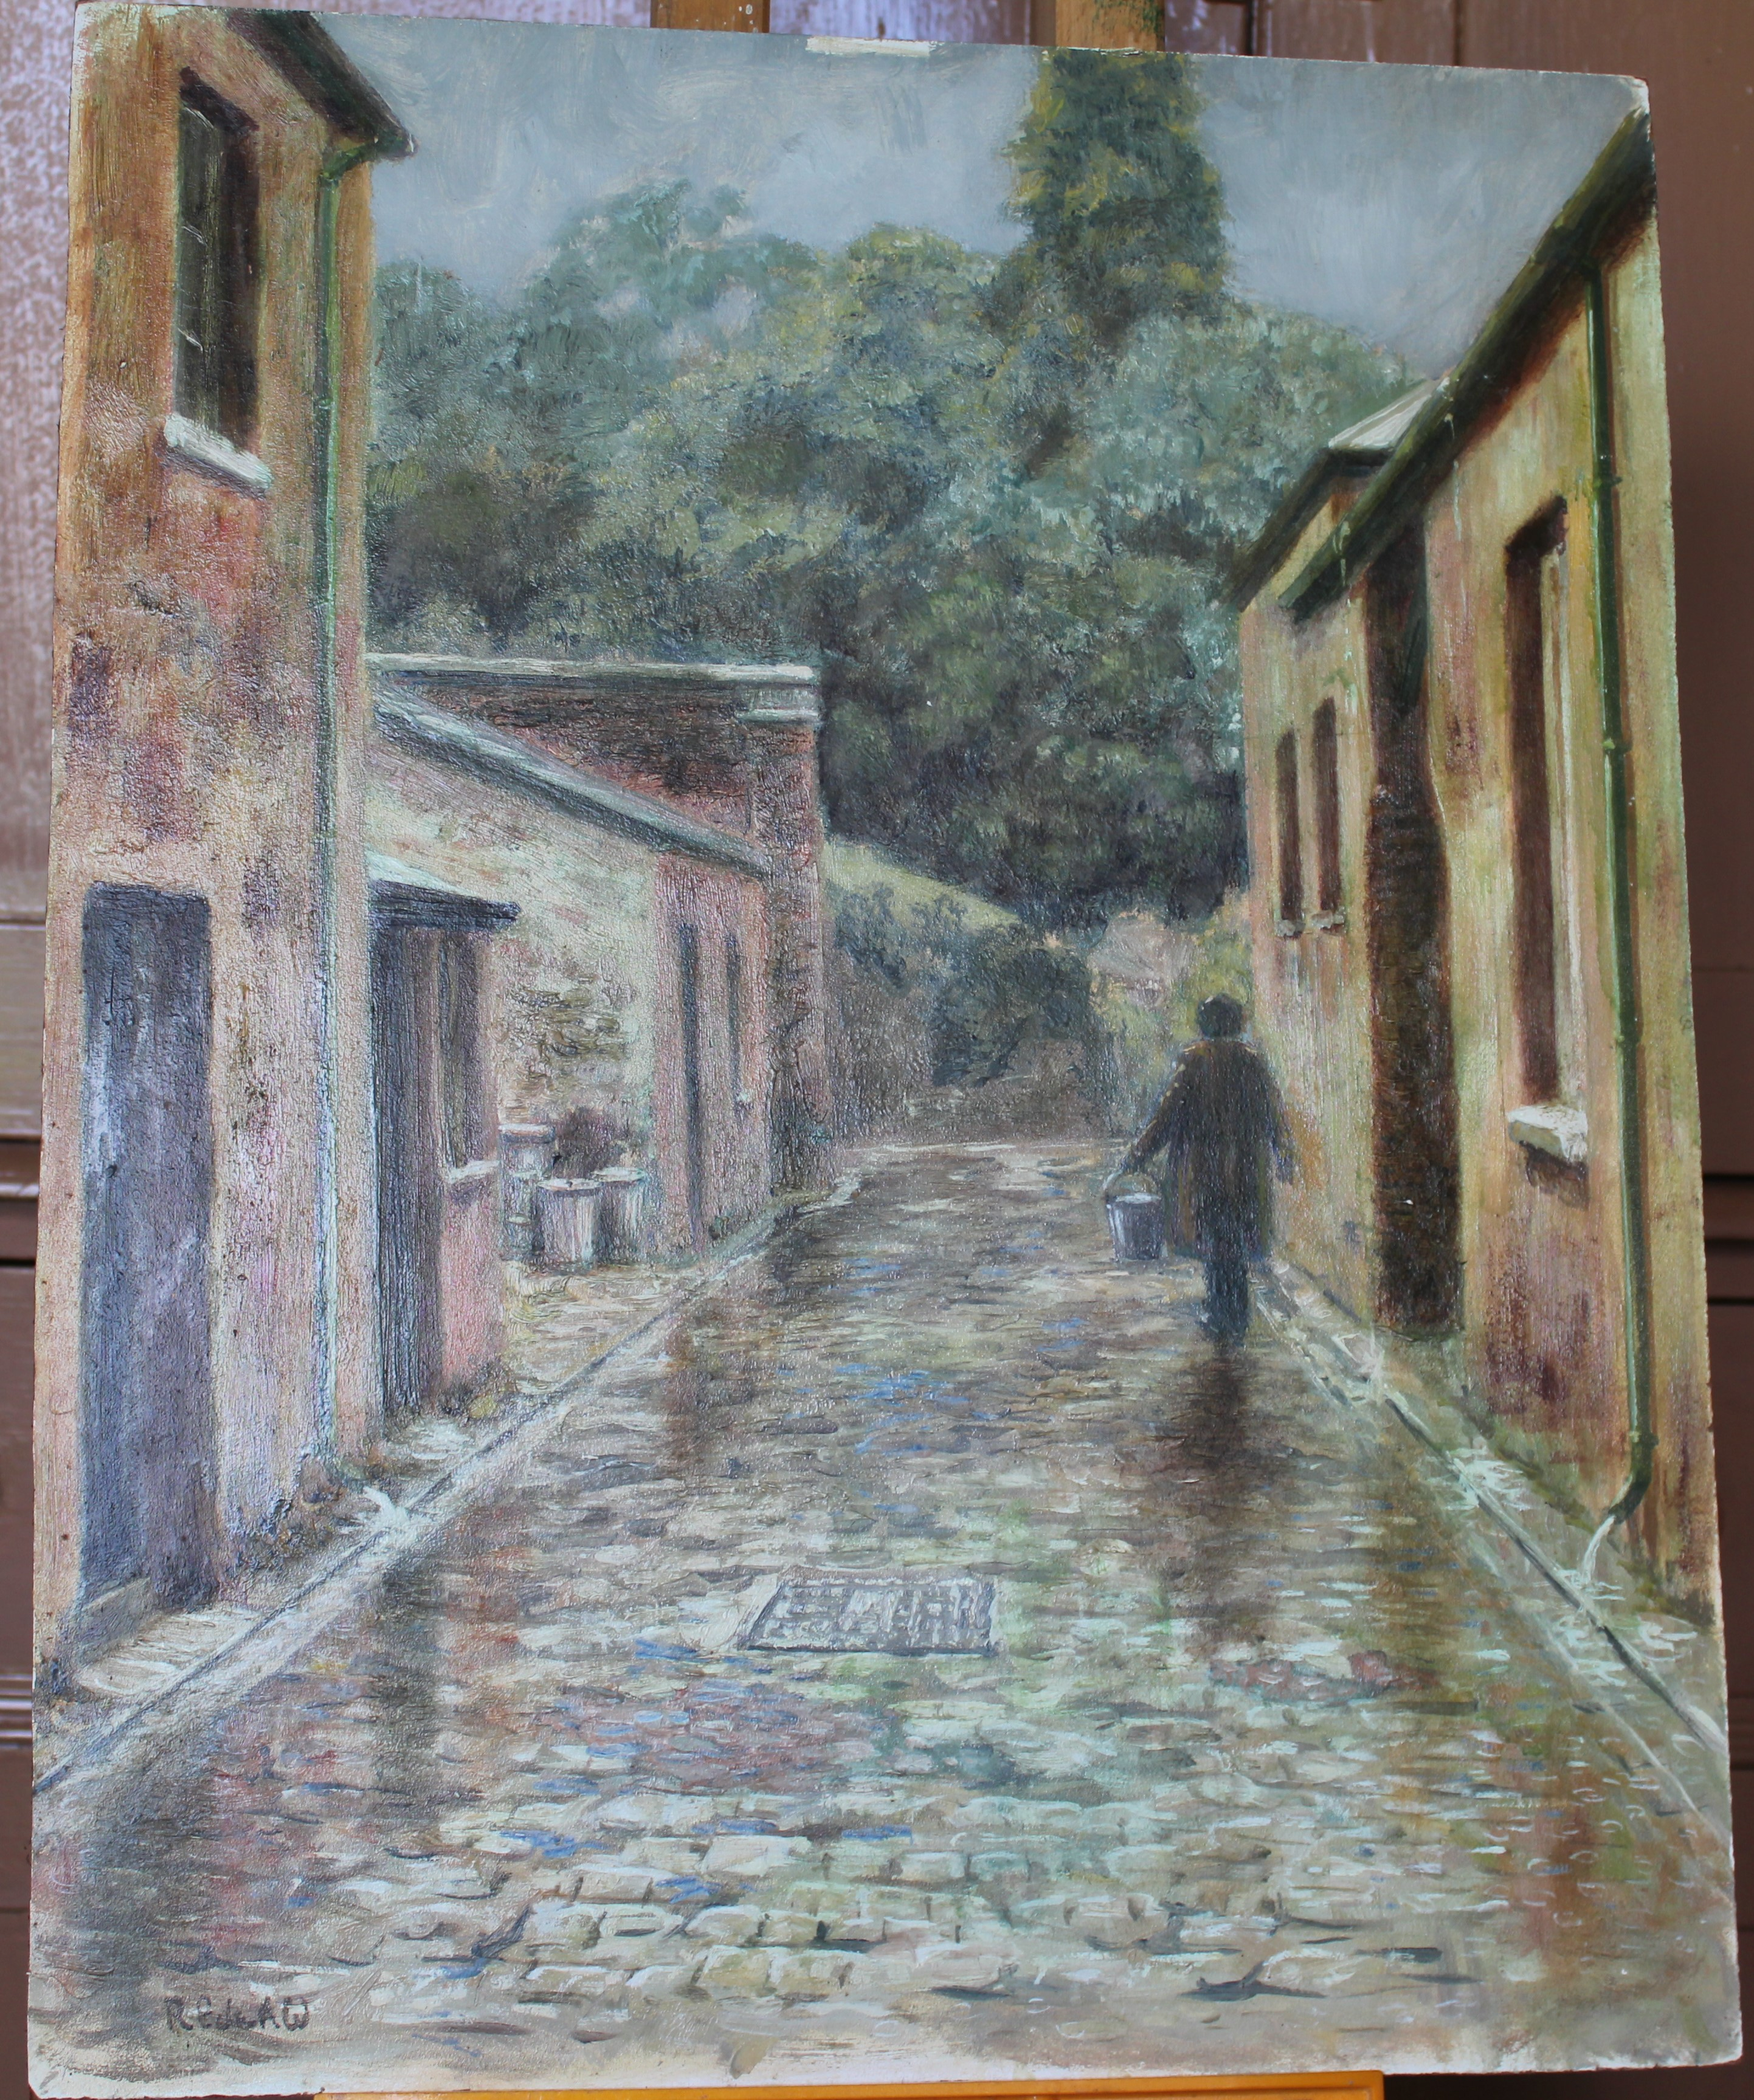 •WILMINSTONE QUARRY Signed unframed oil on board, 45.5 x 61cm, FIGURE WITH BUCKET WALKING ALONG - Image 2 of 4